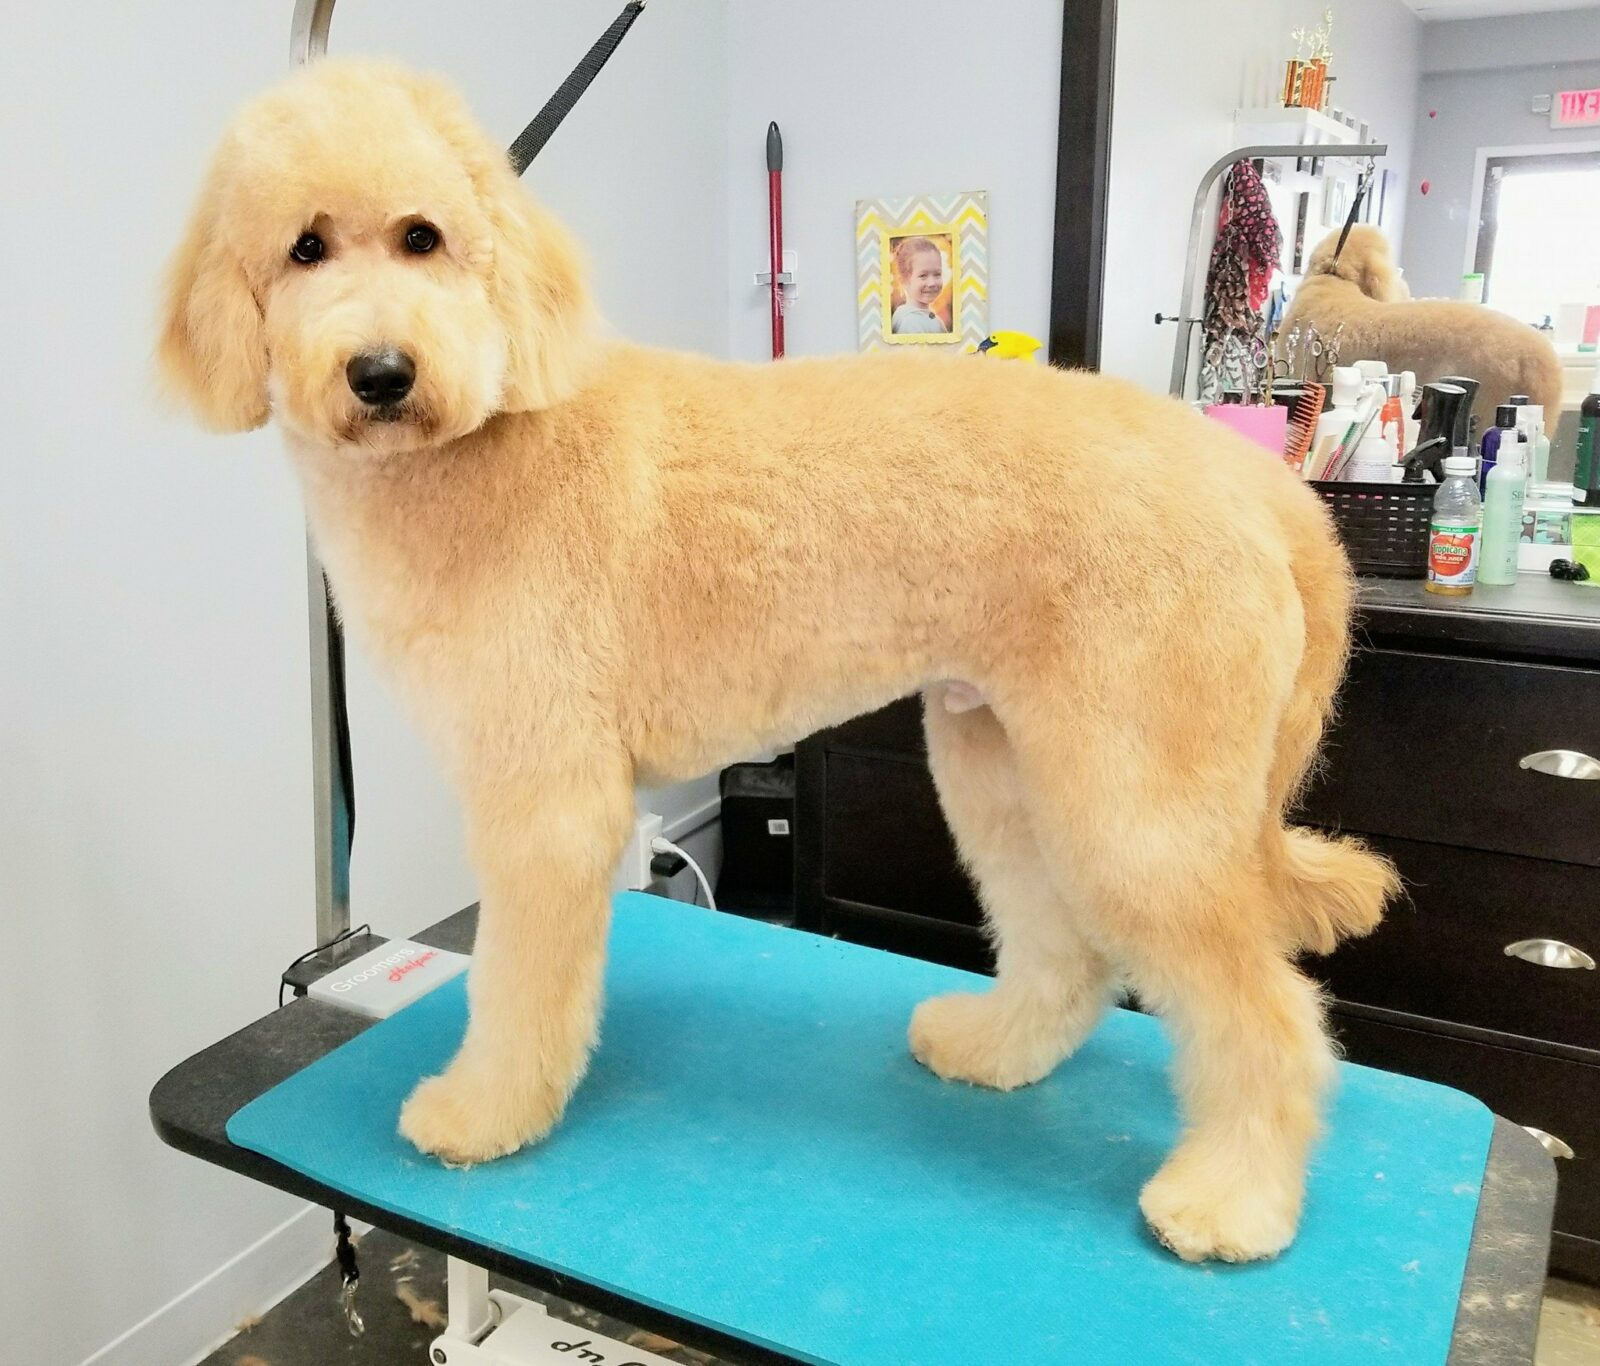 Smoochie Pooch is the Top dog grooming services in Portage